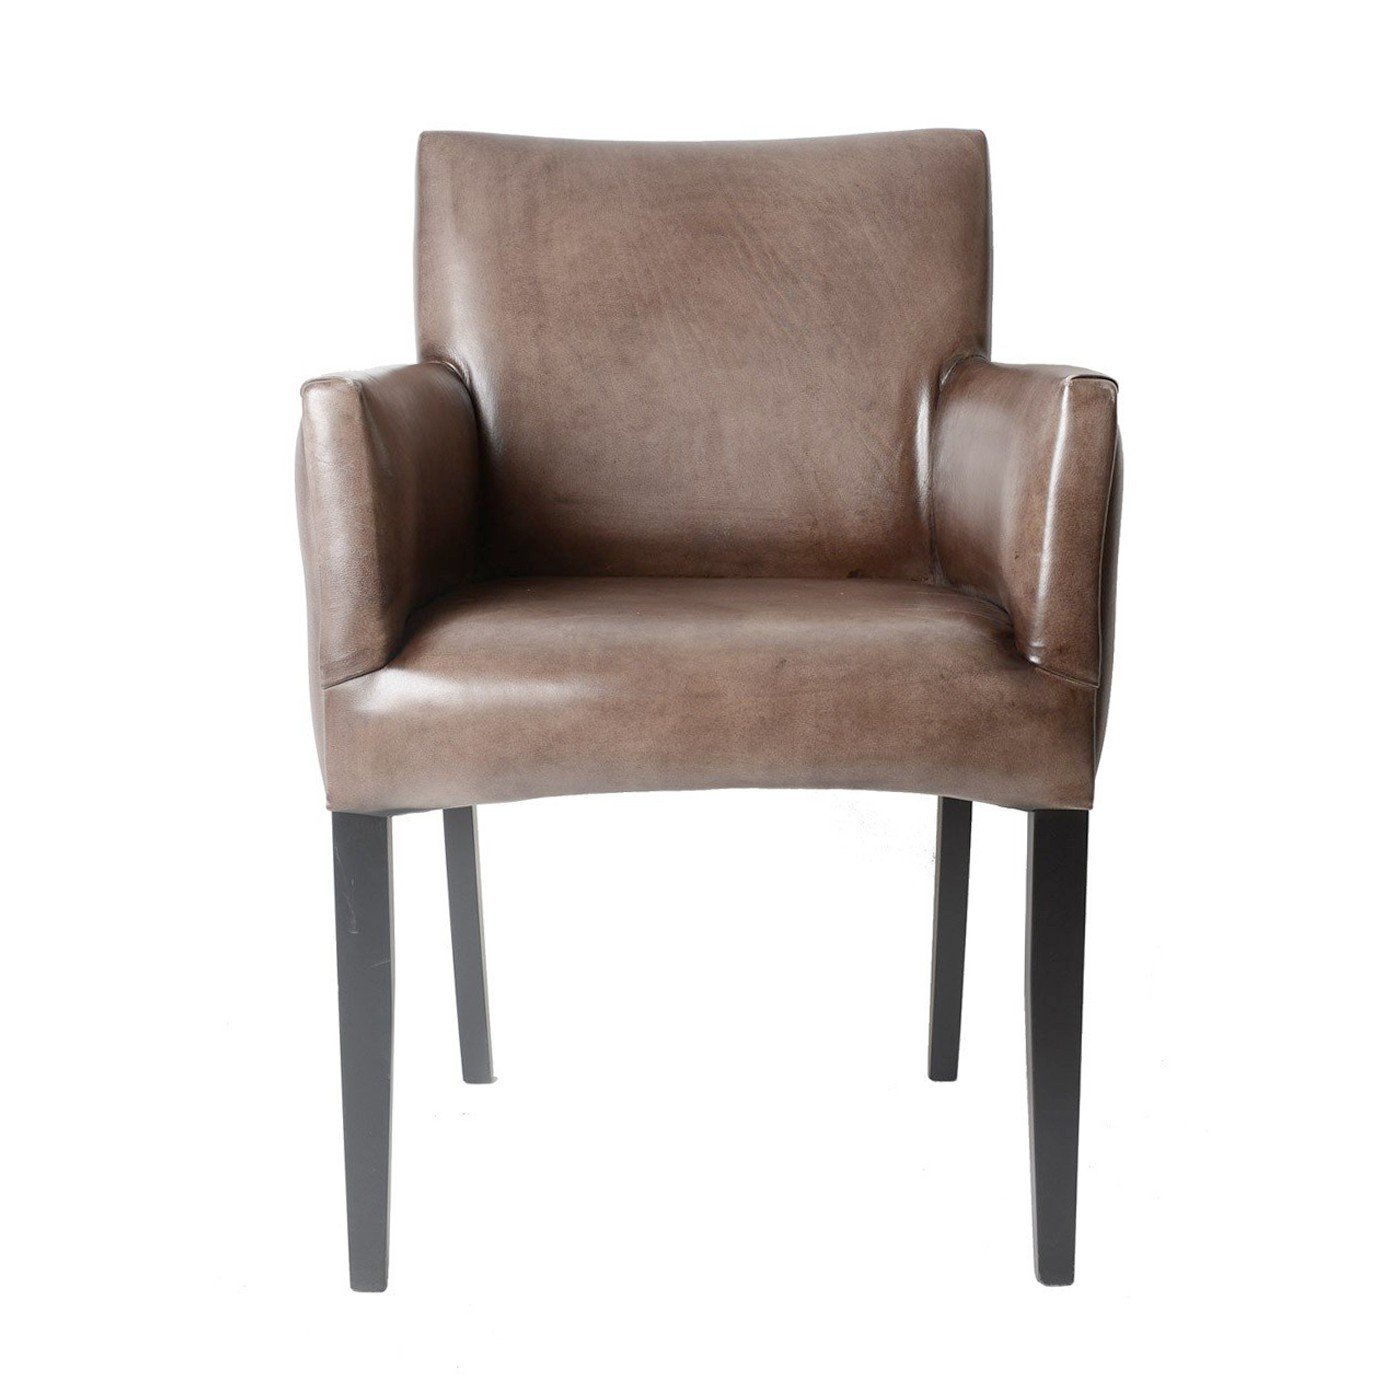 Cuba Armchair With Regard To Caldwell Armchairs (View 13 of 15)